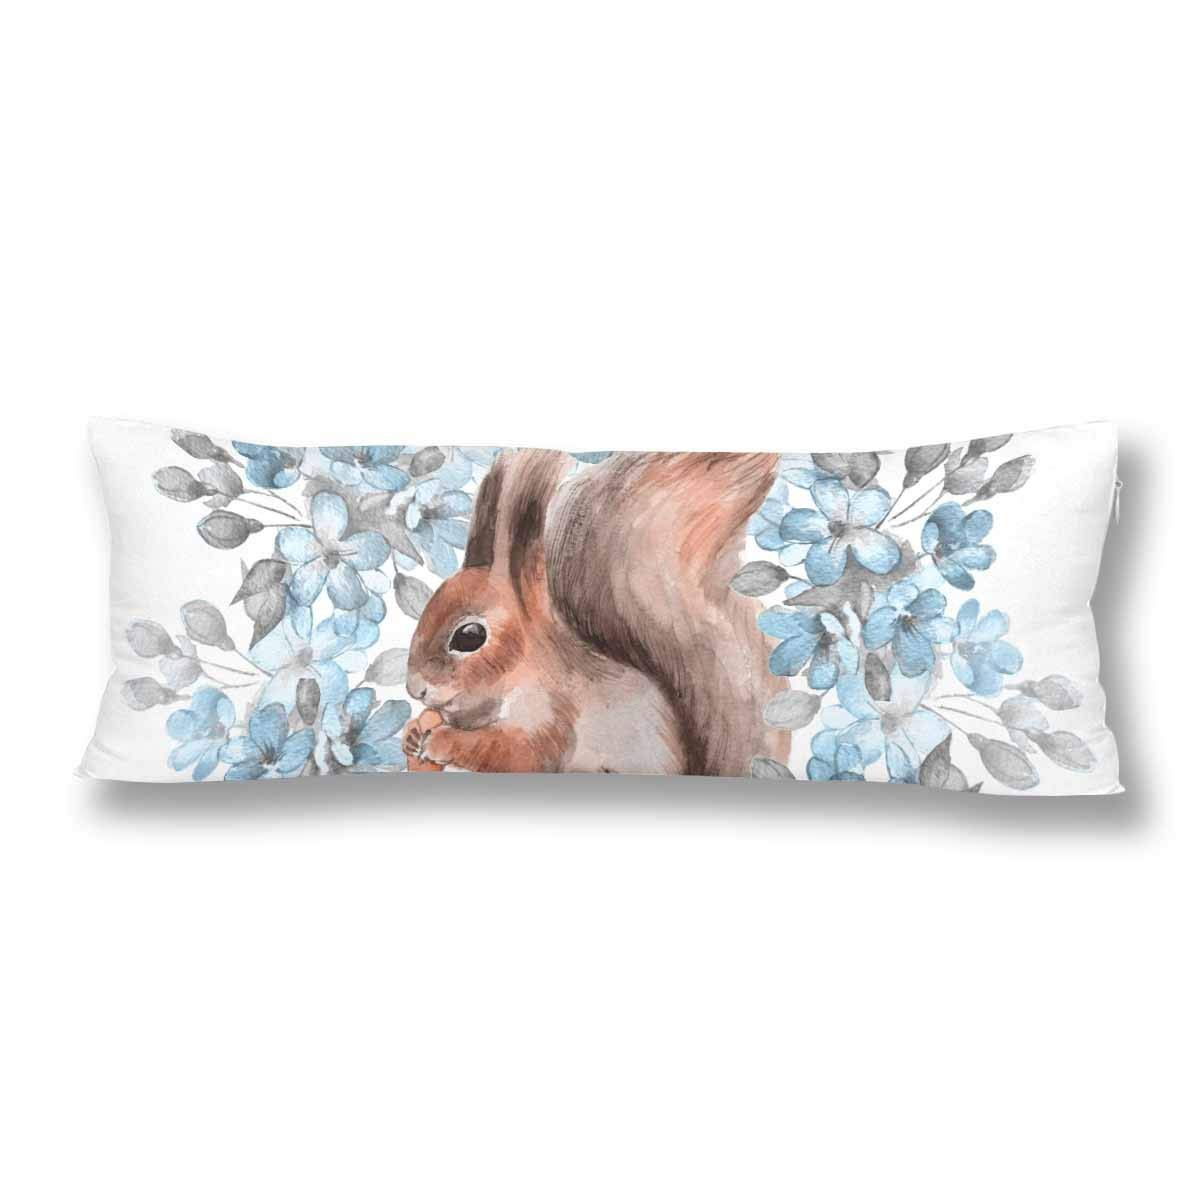 ABPHOTO Squirrel And Blue Flowers Body Pillow Covers Pillowcase Throw Pillows 20x60 inch